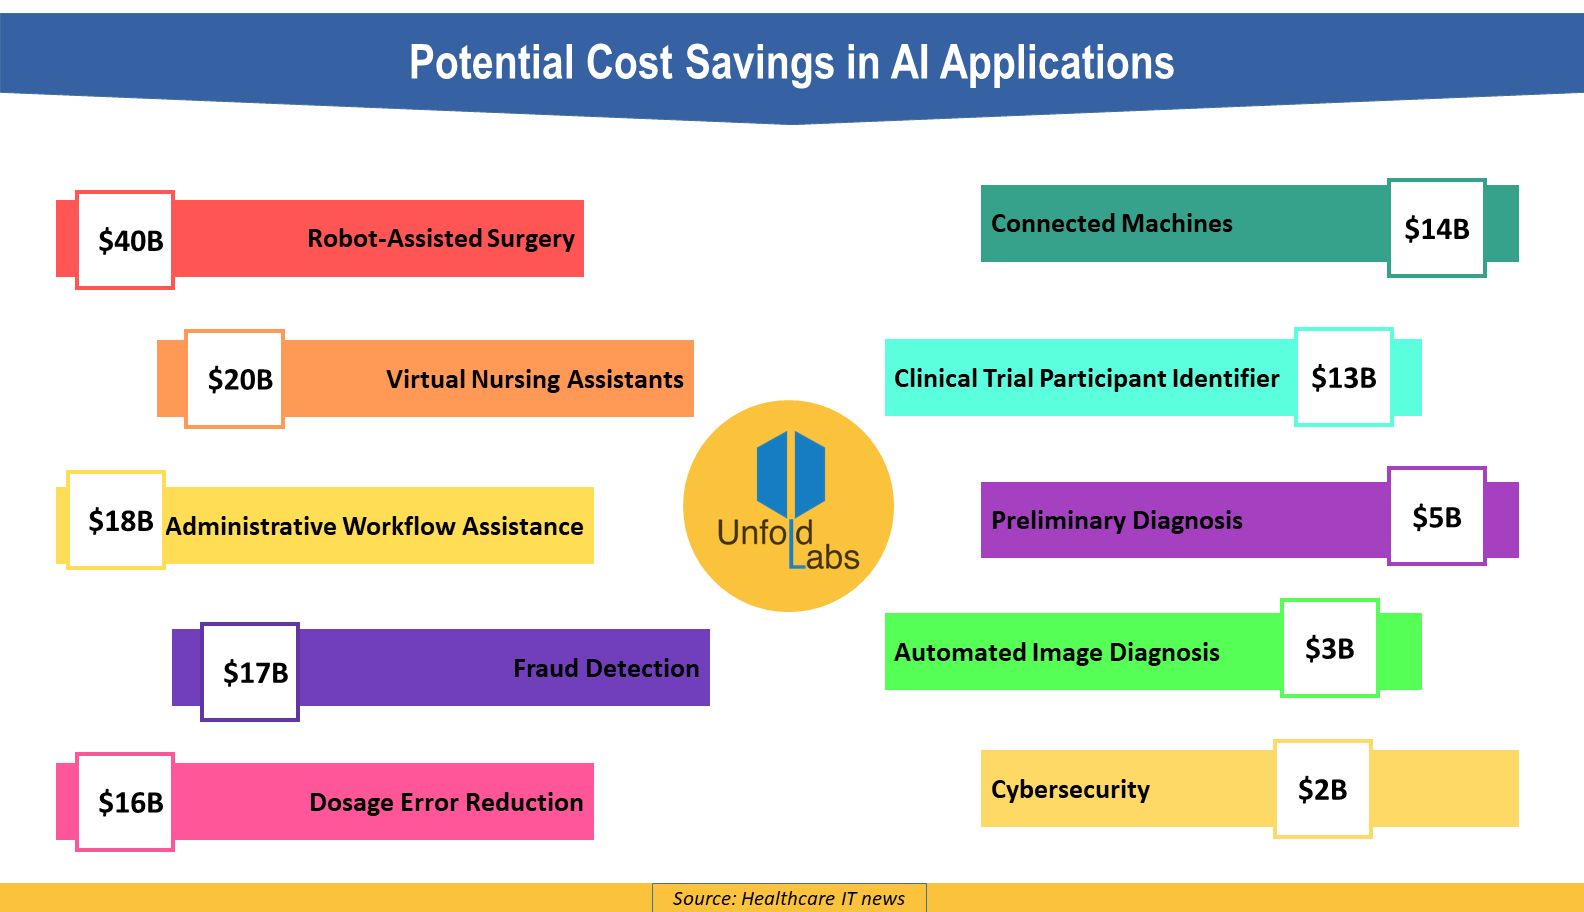 Potential Cost Savings in AI Applications